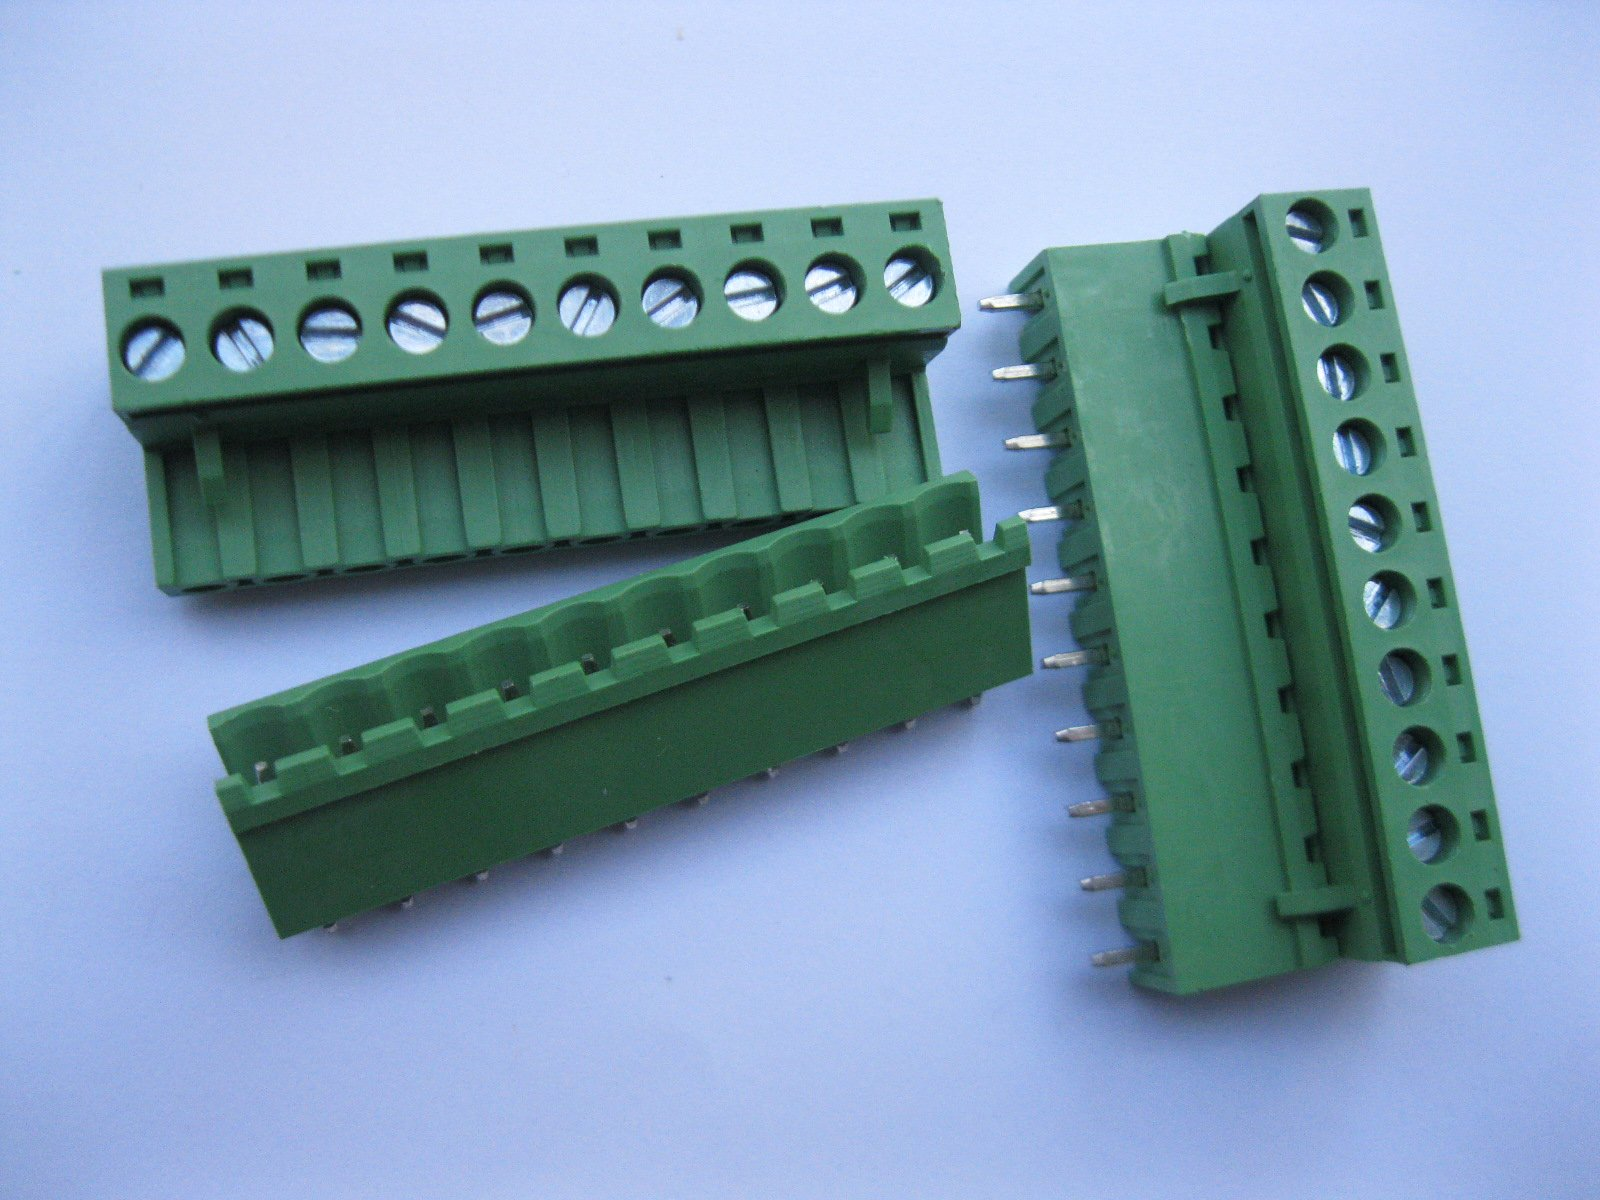 5 Pcs Pitch 5.08mm Straight 10way/pin Screw Terminal Block Connector w/ Straight-pin Green Color Pluggable Type Skywalking by Skywalking